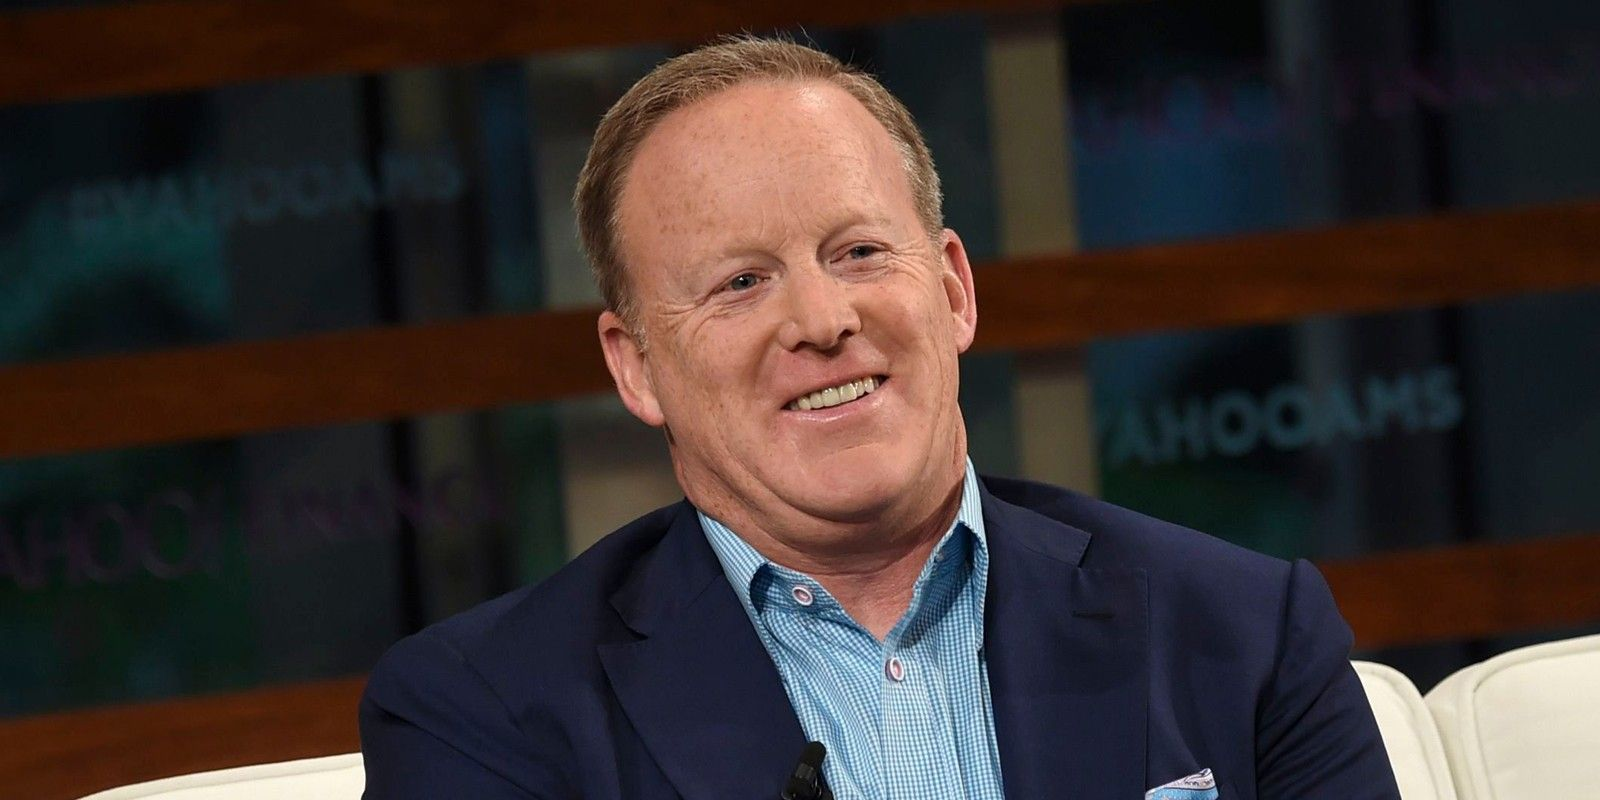 Sean Spicer Responds to Dancing with the Stars Criticism